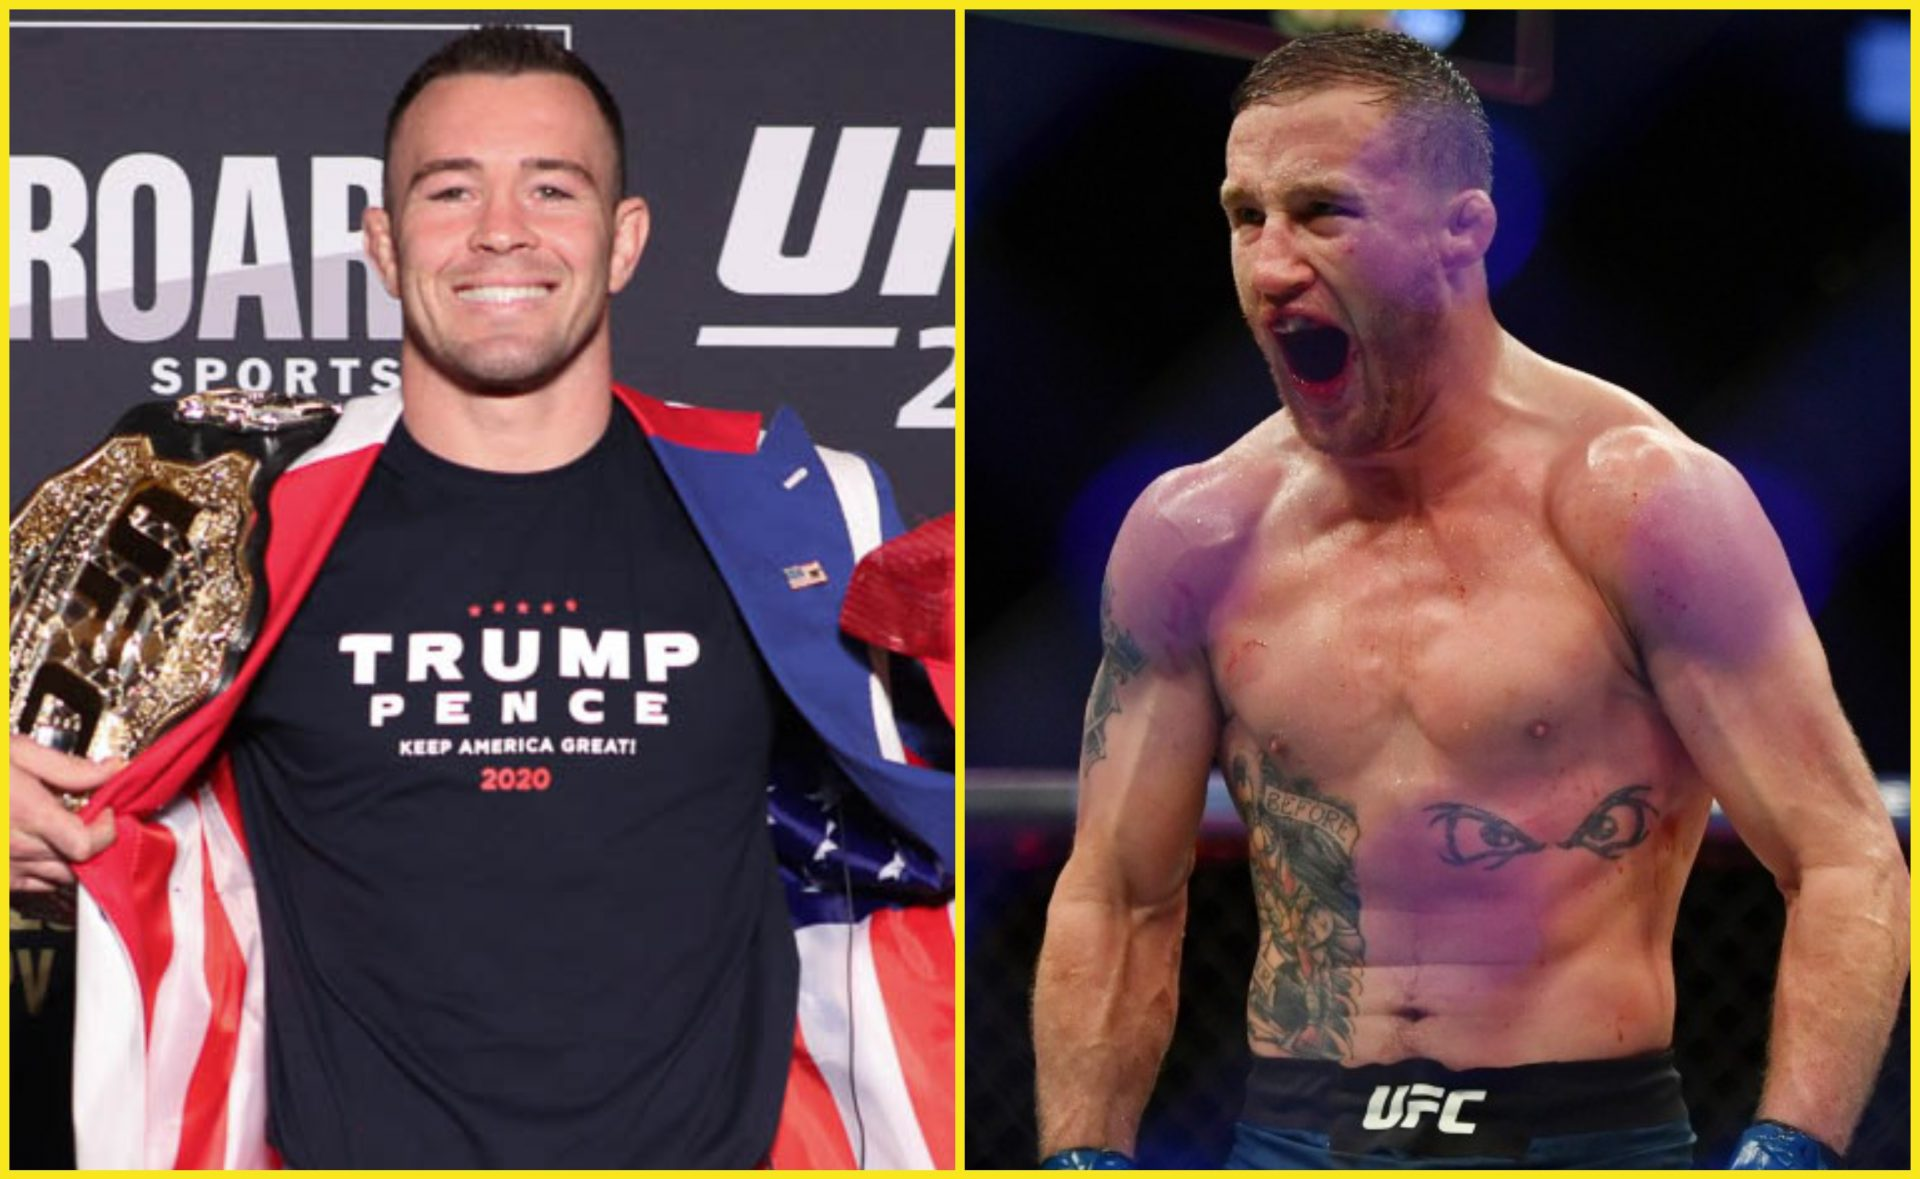 Justin Gaethje blasts 'Coward' Colby Covington: 'He's a fake person' - Justin Gaethje